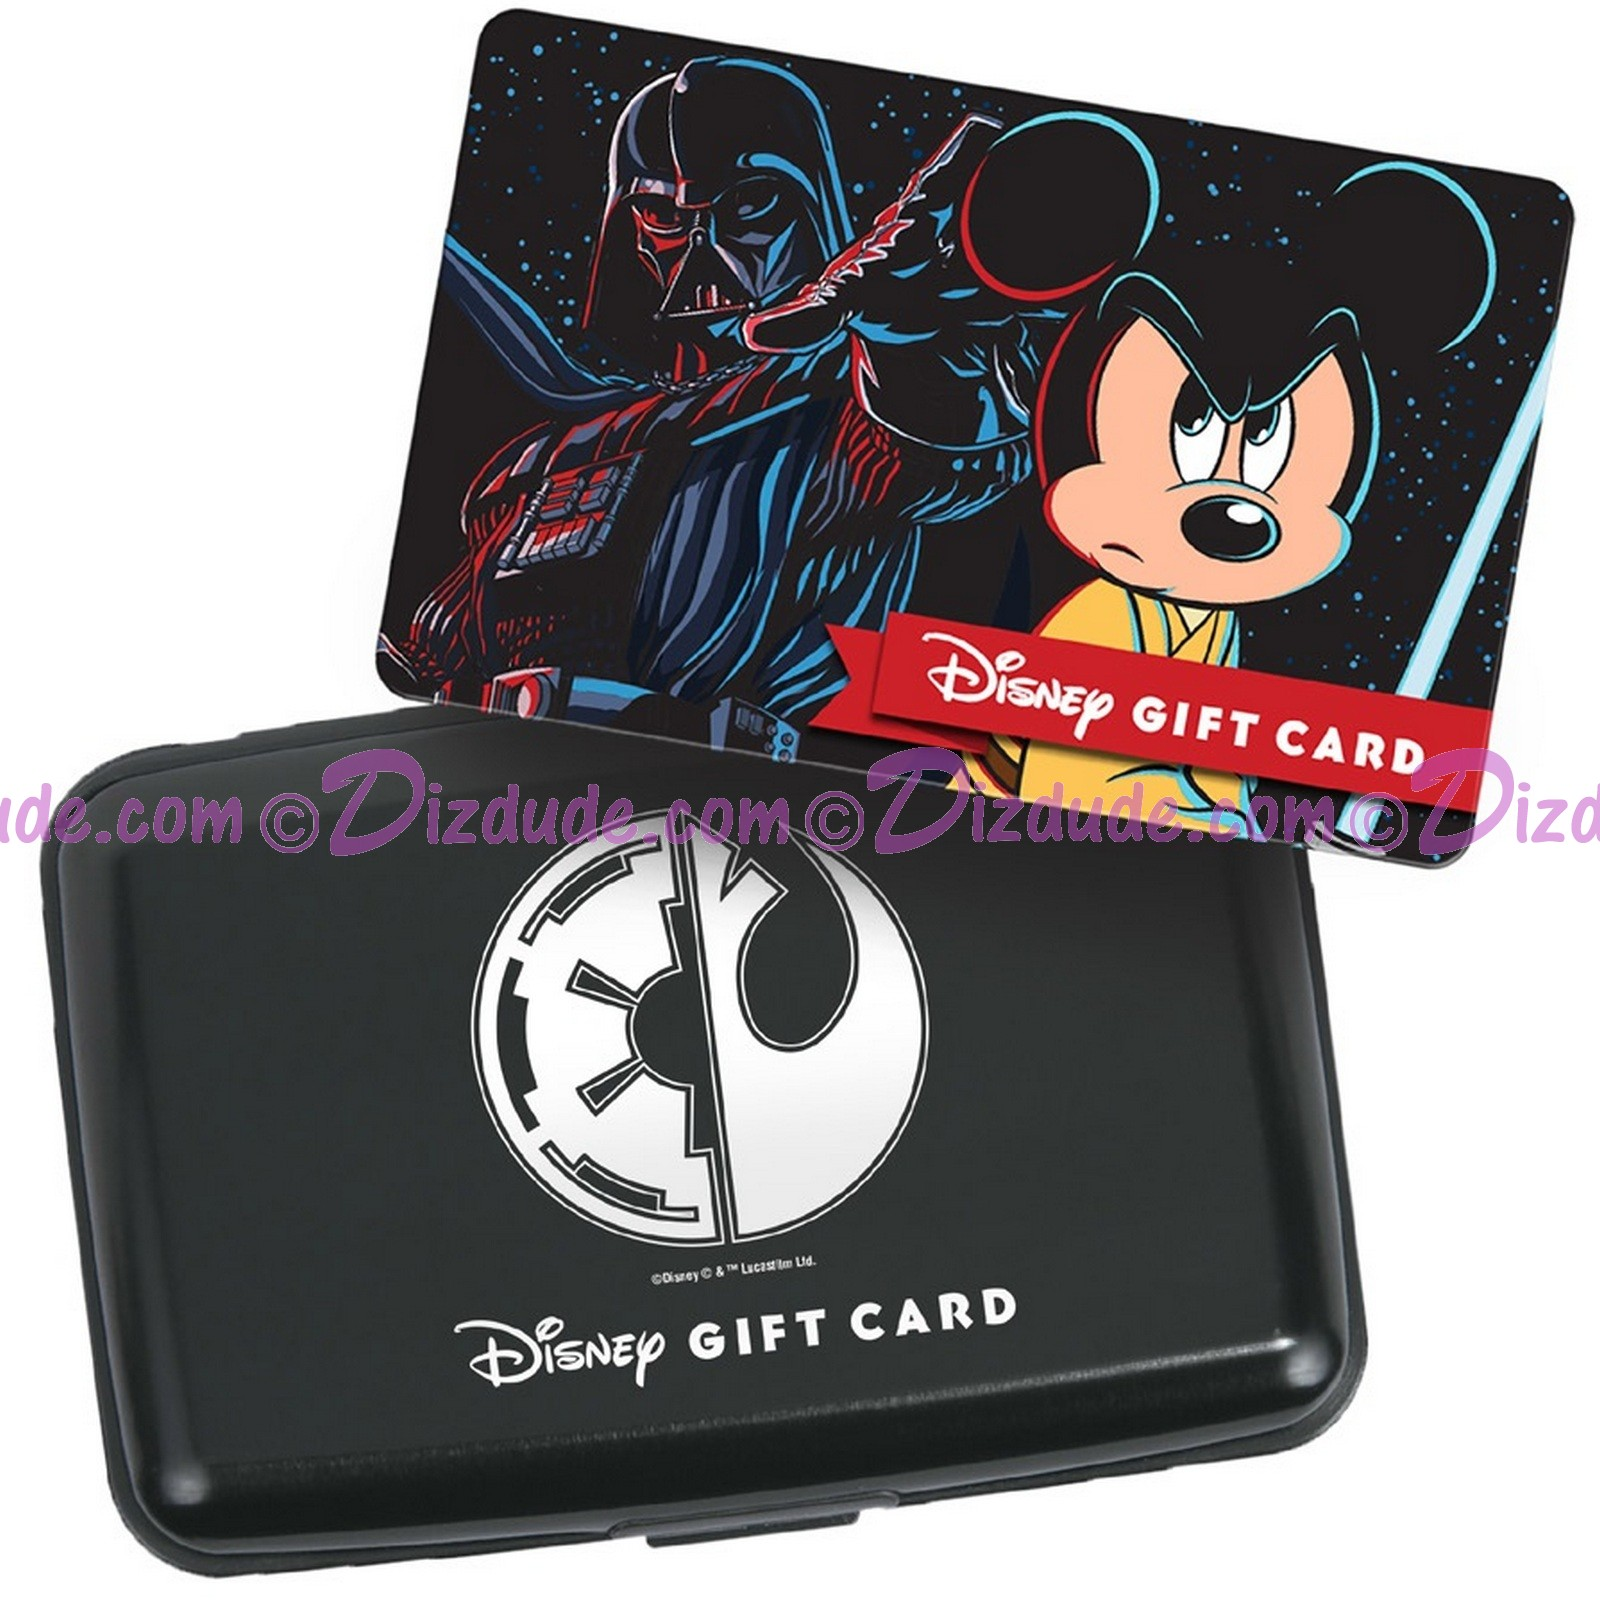 Star Wars Galactic Gathering Gift Card with Case Limited Edition ~ Disney Galactic Gathering Star Wars Weekends 2015 Event © Dizdude.com